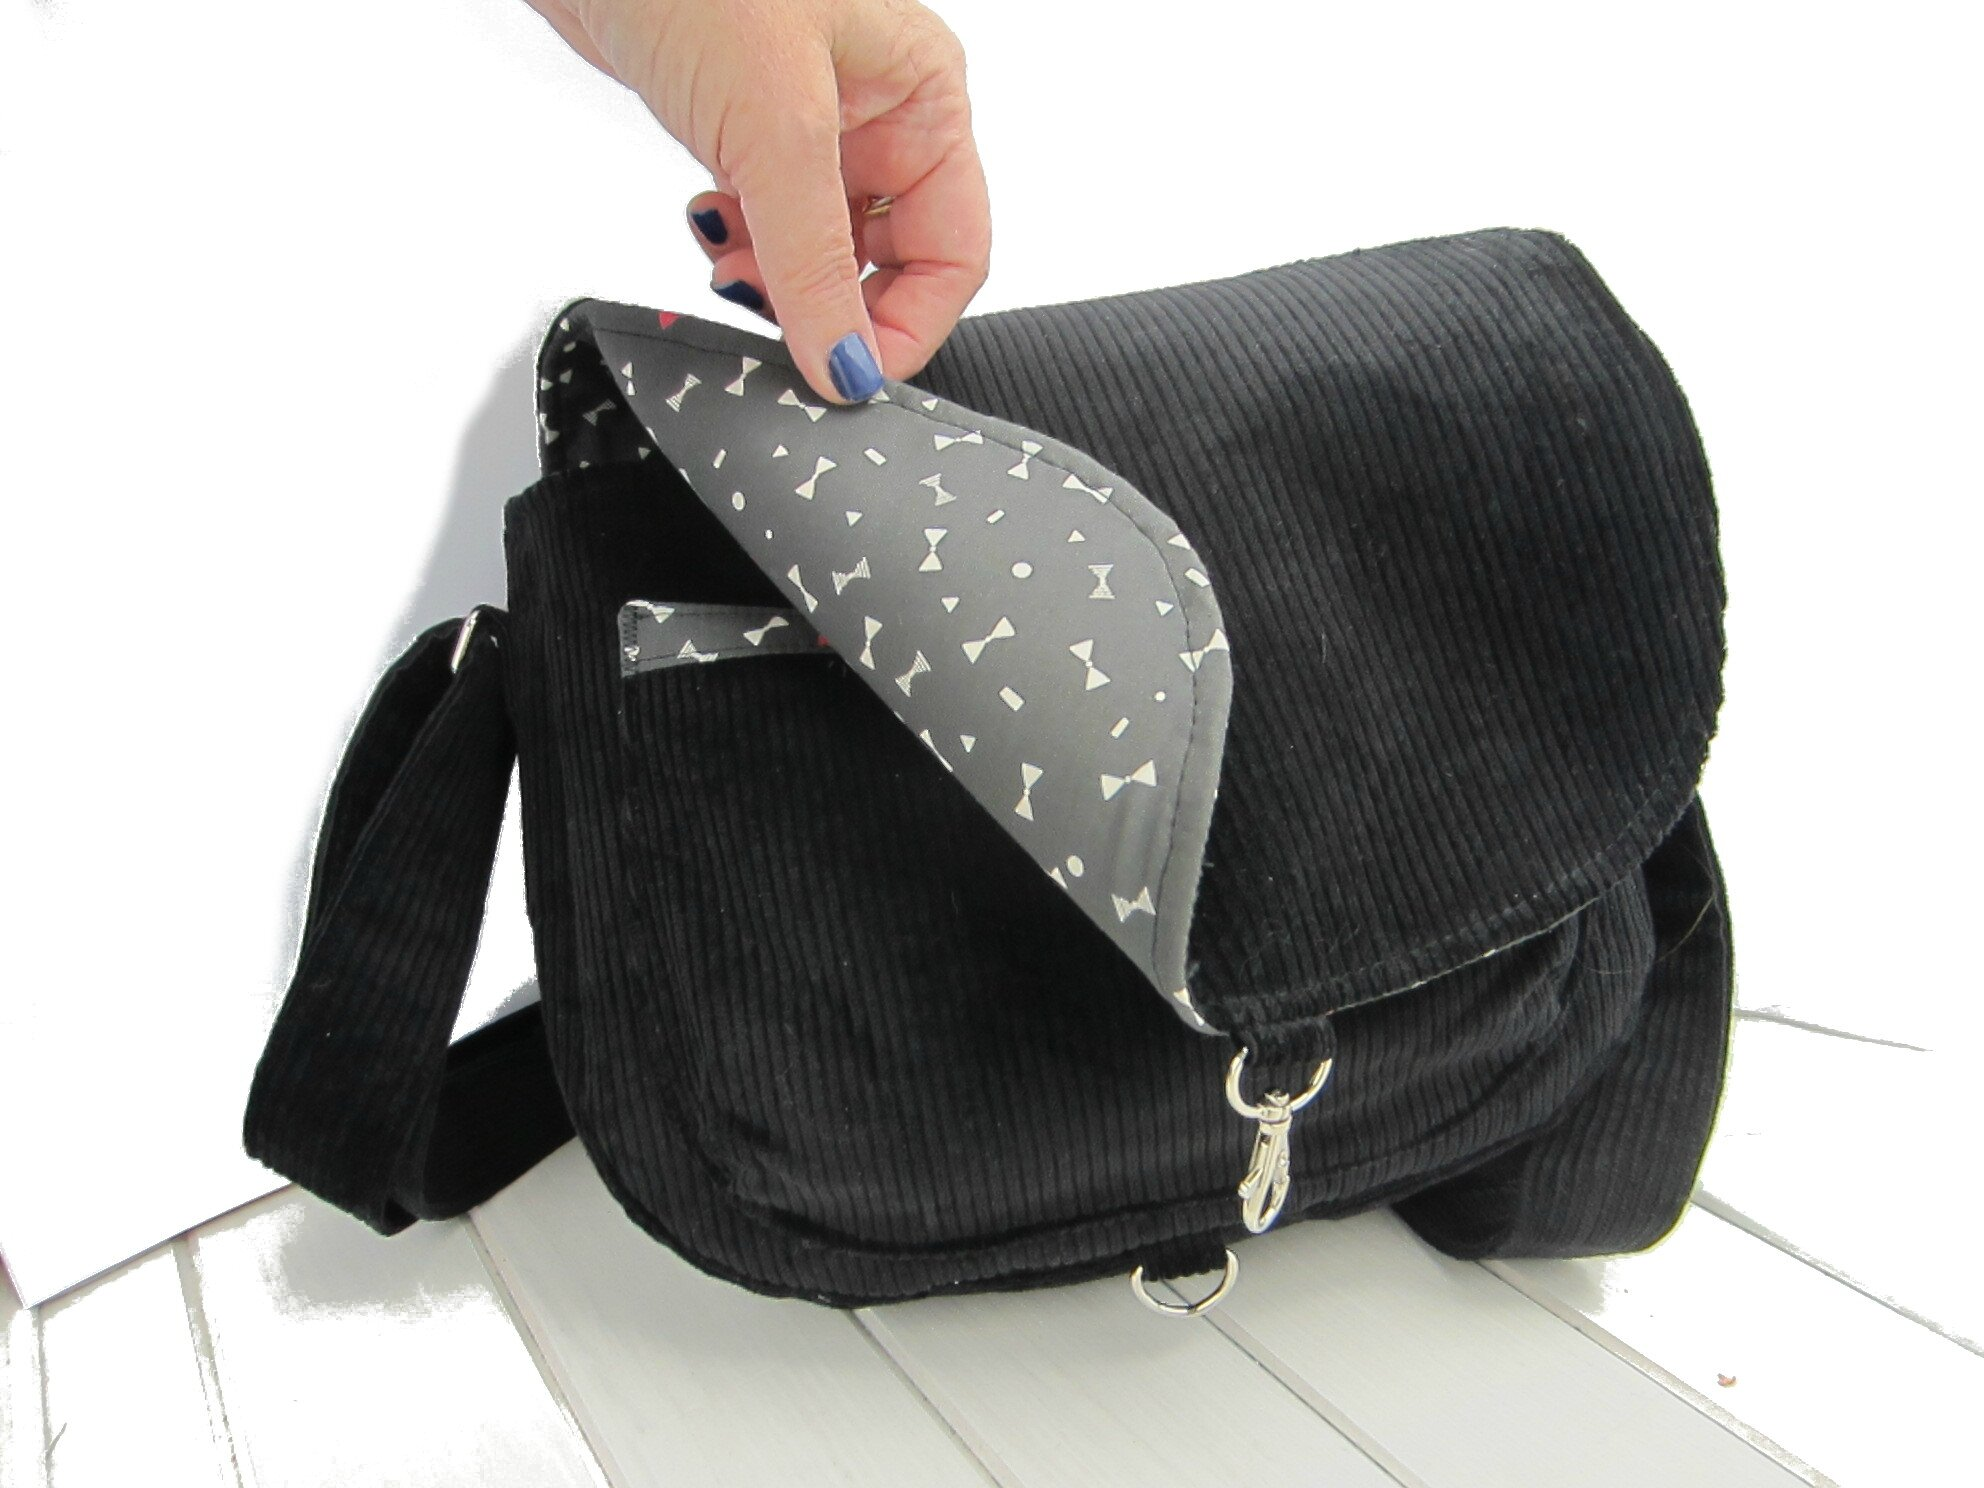 Le Sac Besace Forme Arrondi XdOY7Cy